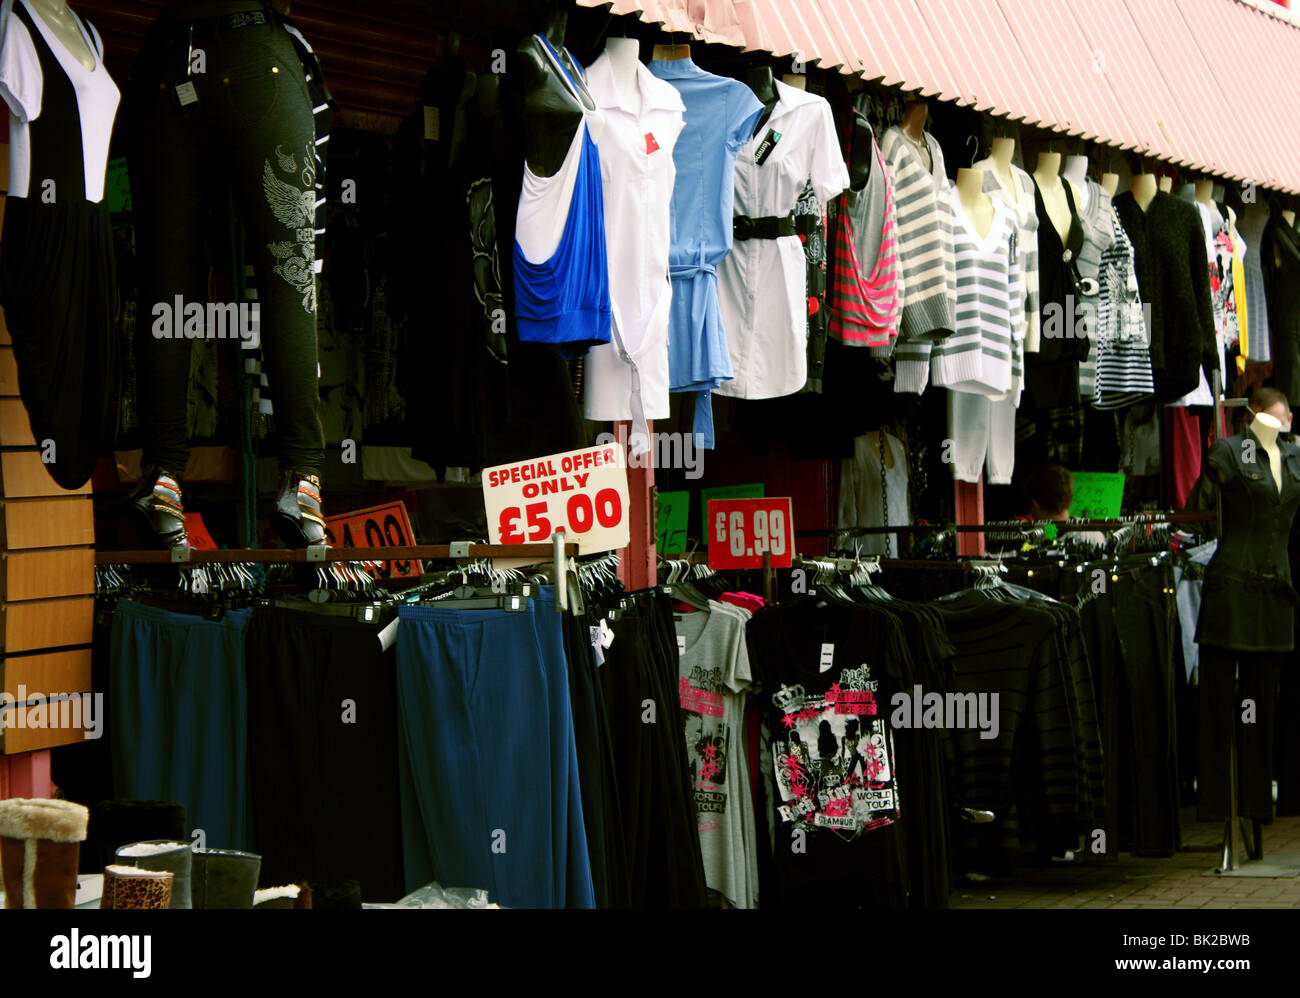 A clothing retail market stall in Skegness Stock Photo